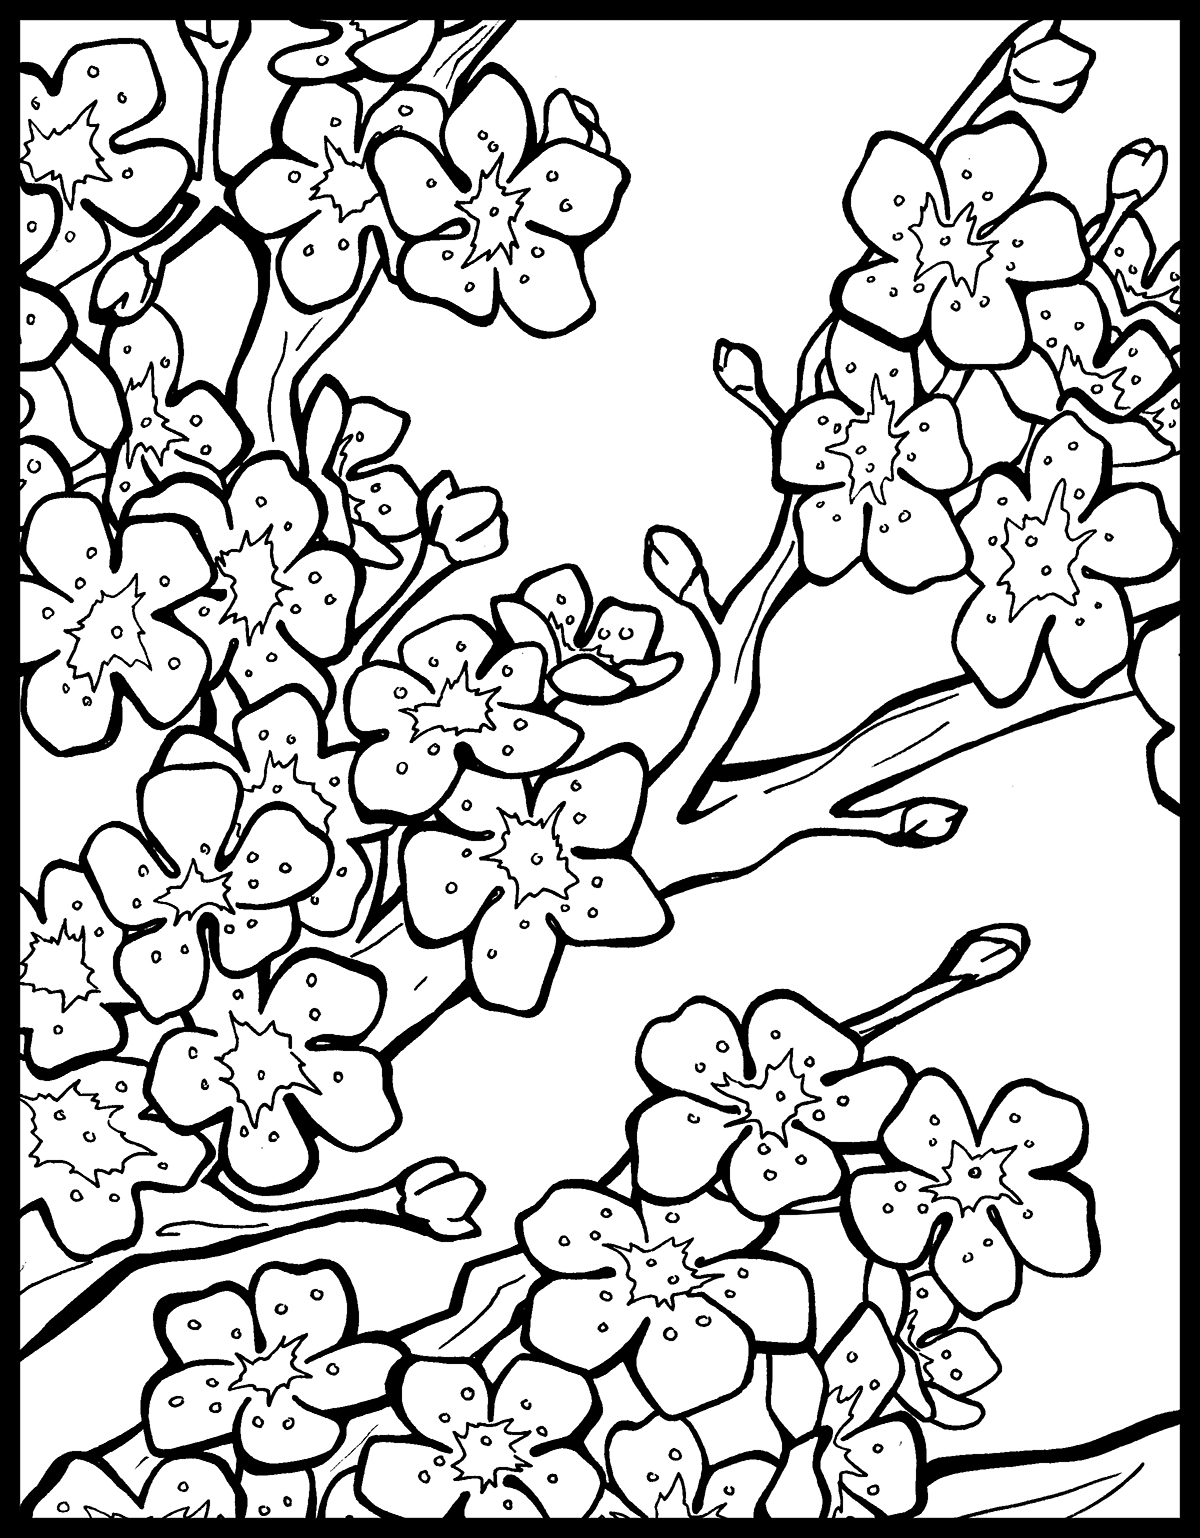 Chinese Lantern Festival Coloring Book